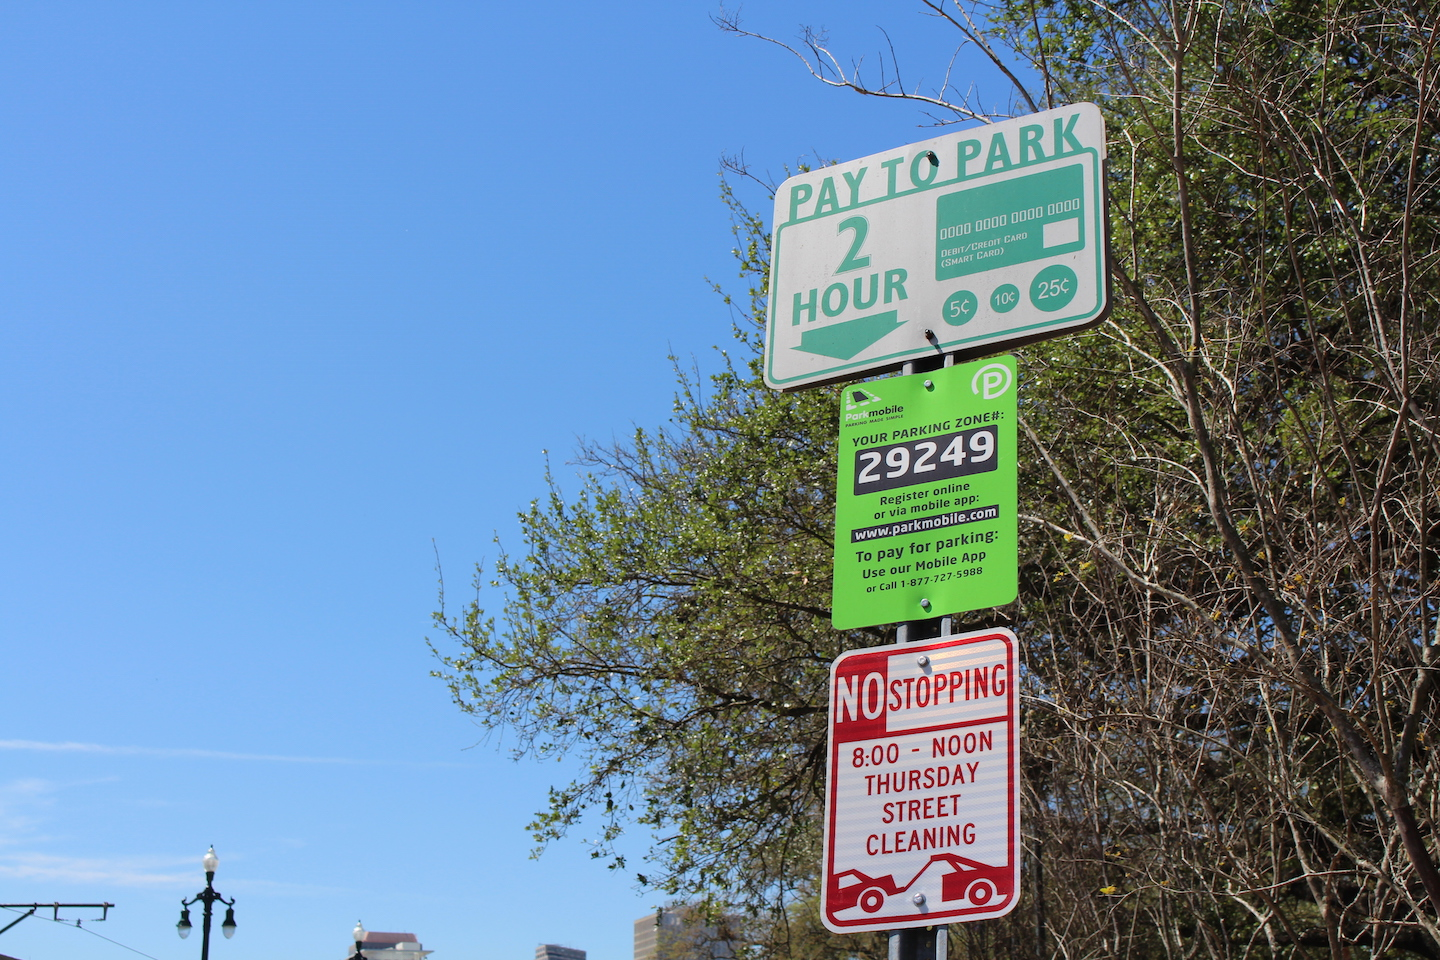 People only have to pay for metered parking Monday-Saturday from 8 a.m. – 7 p.m. In the city's quarterly economic review, the city's economist reported a $4.2 millions increase from October 2015 to August 2016.